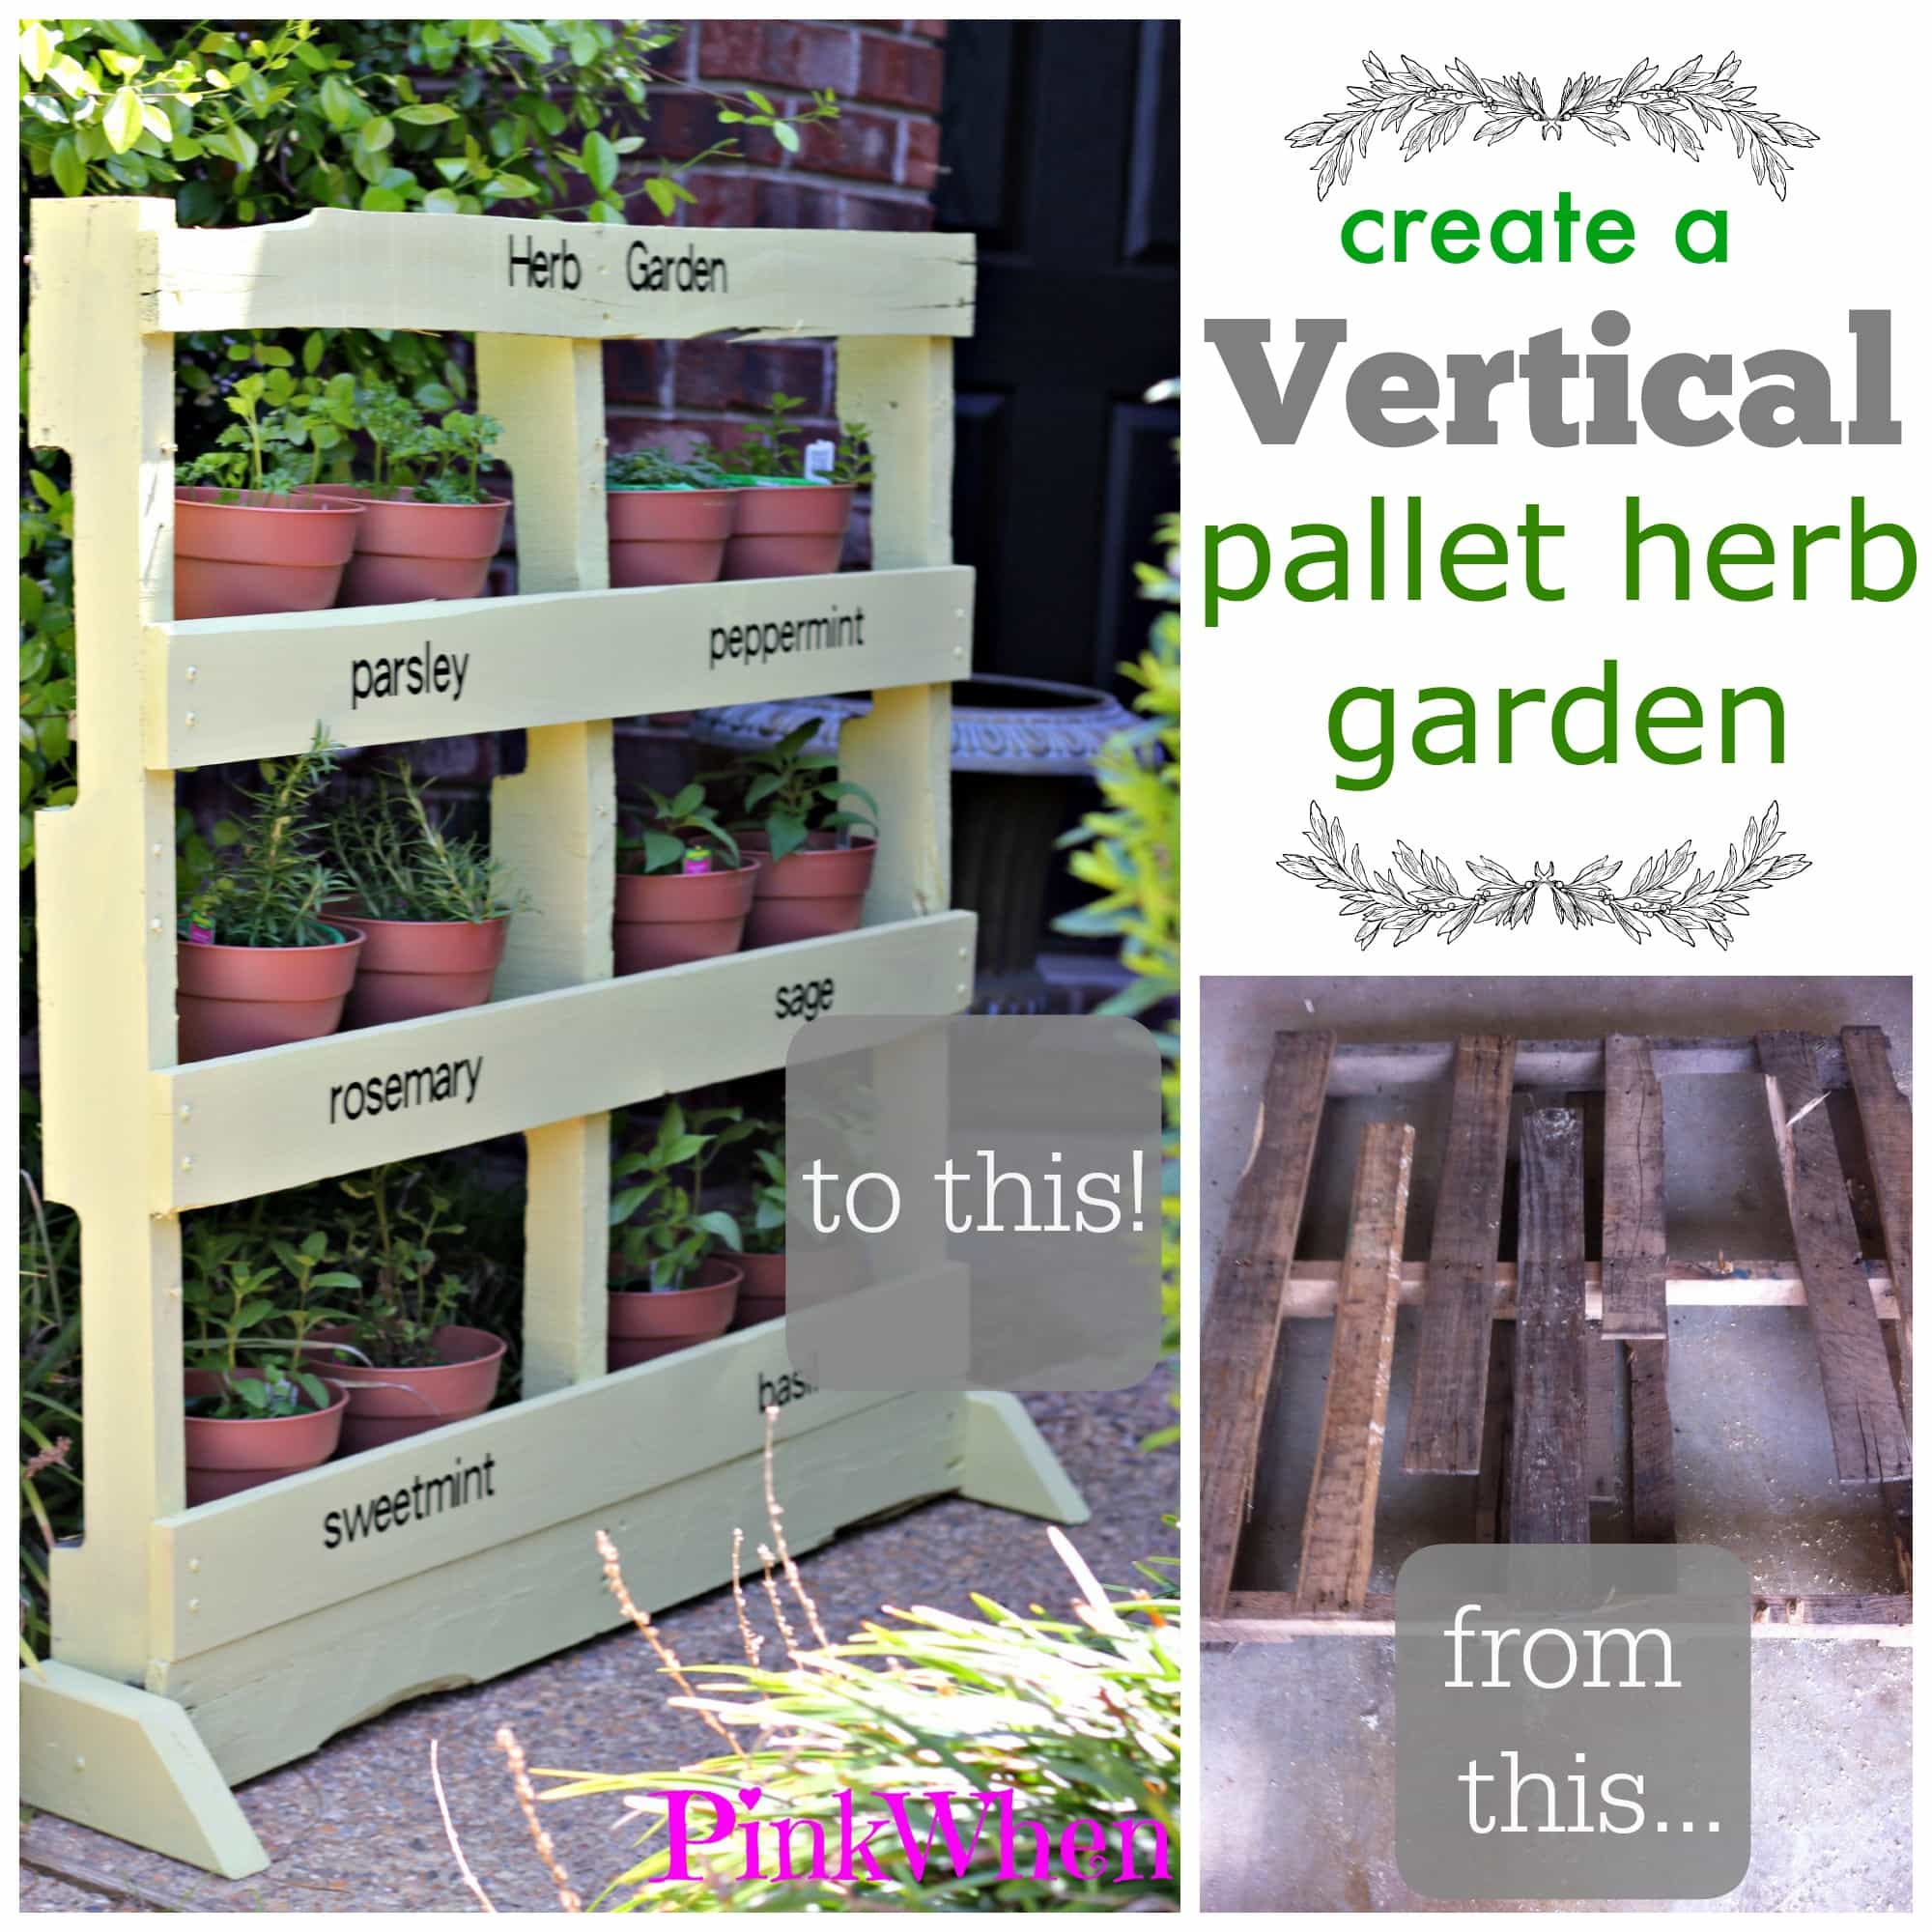 This Is Going To Be Much Easier To Follow Pallet Garden Tutorial.